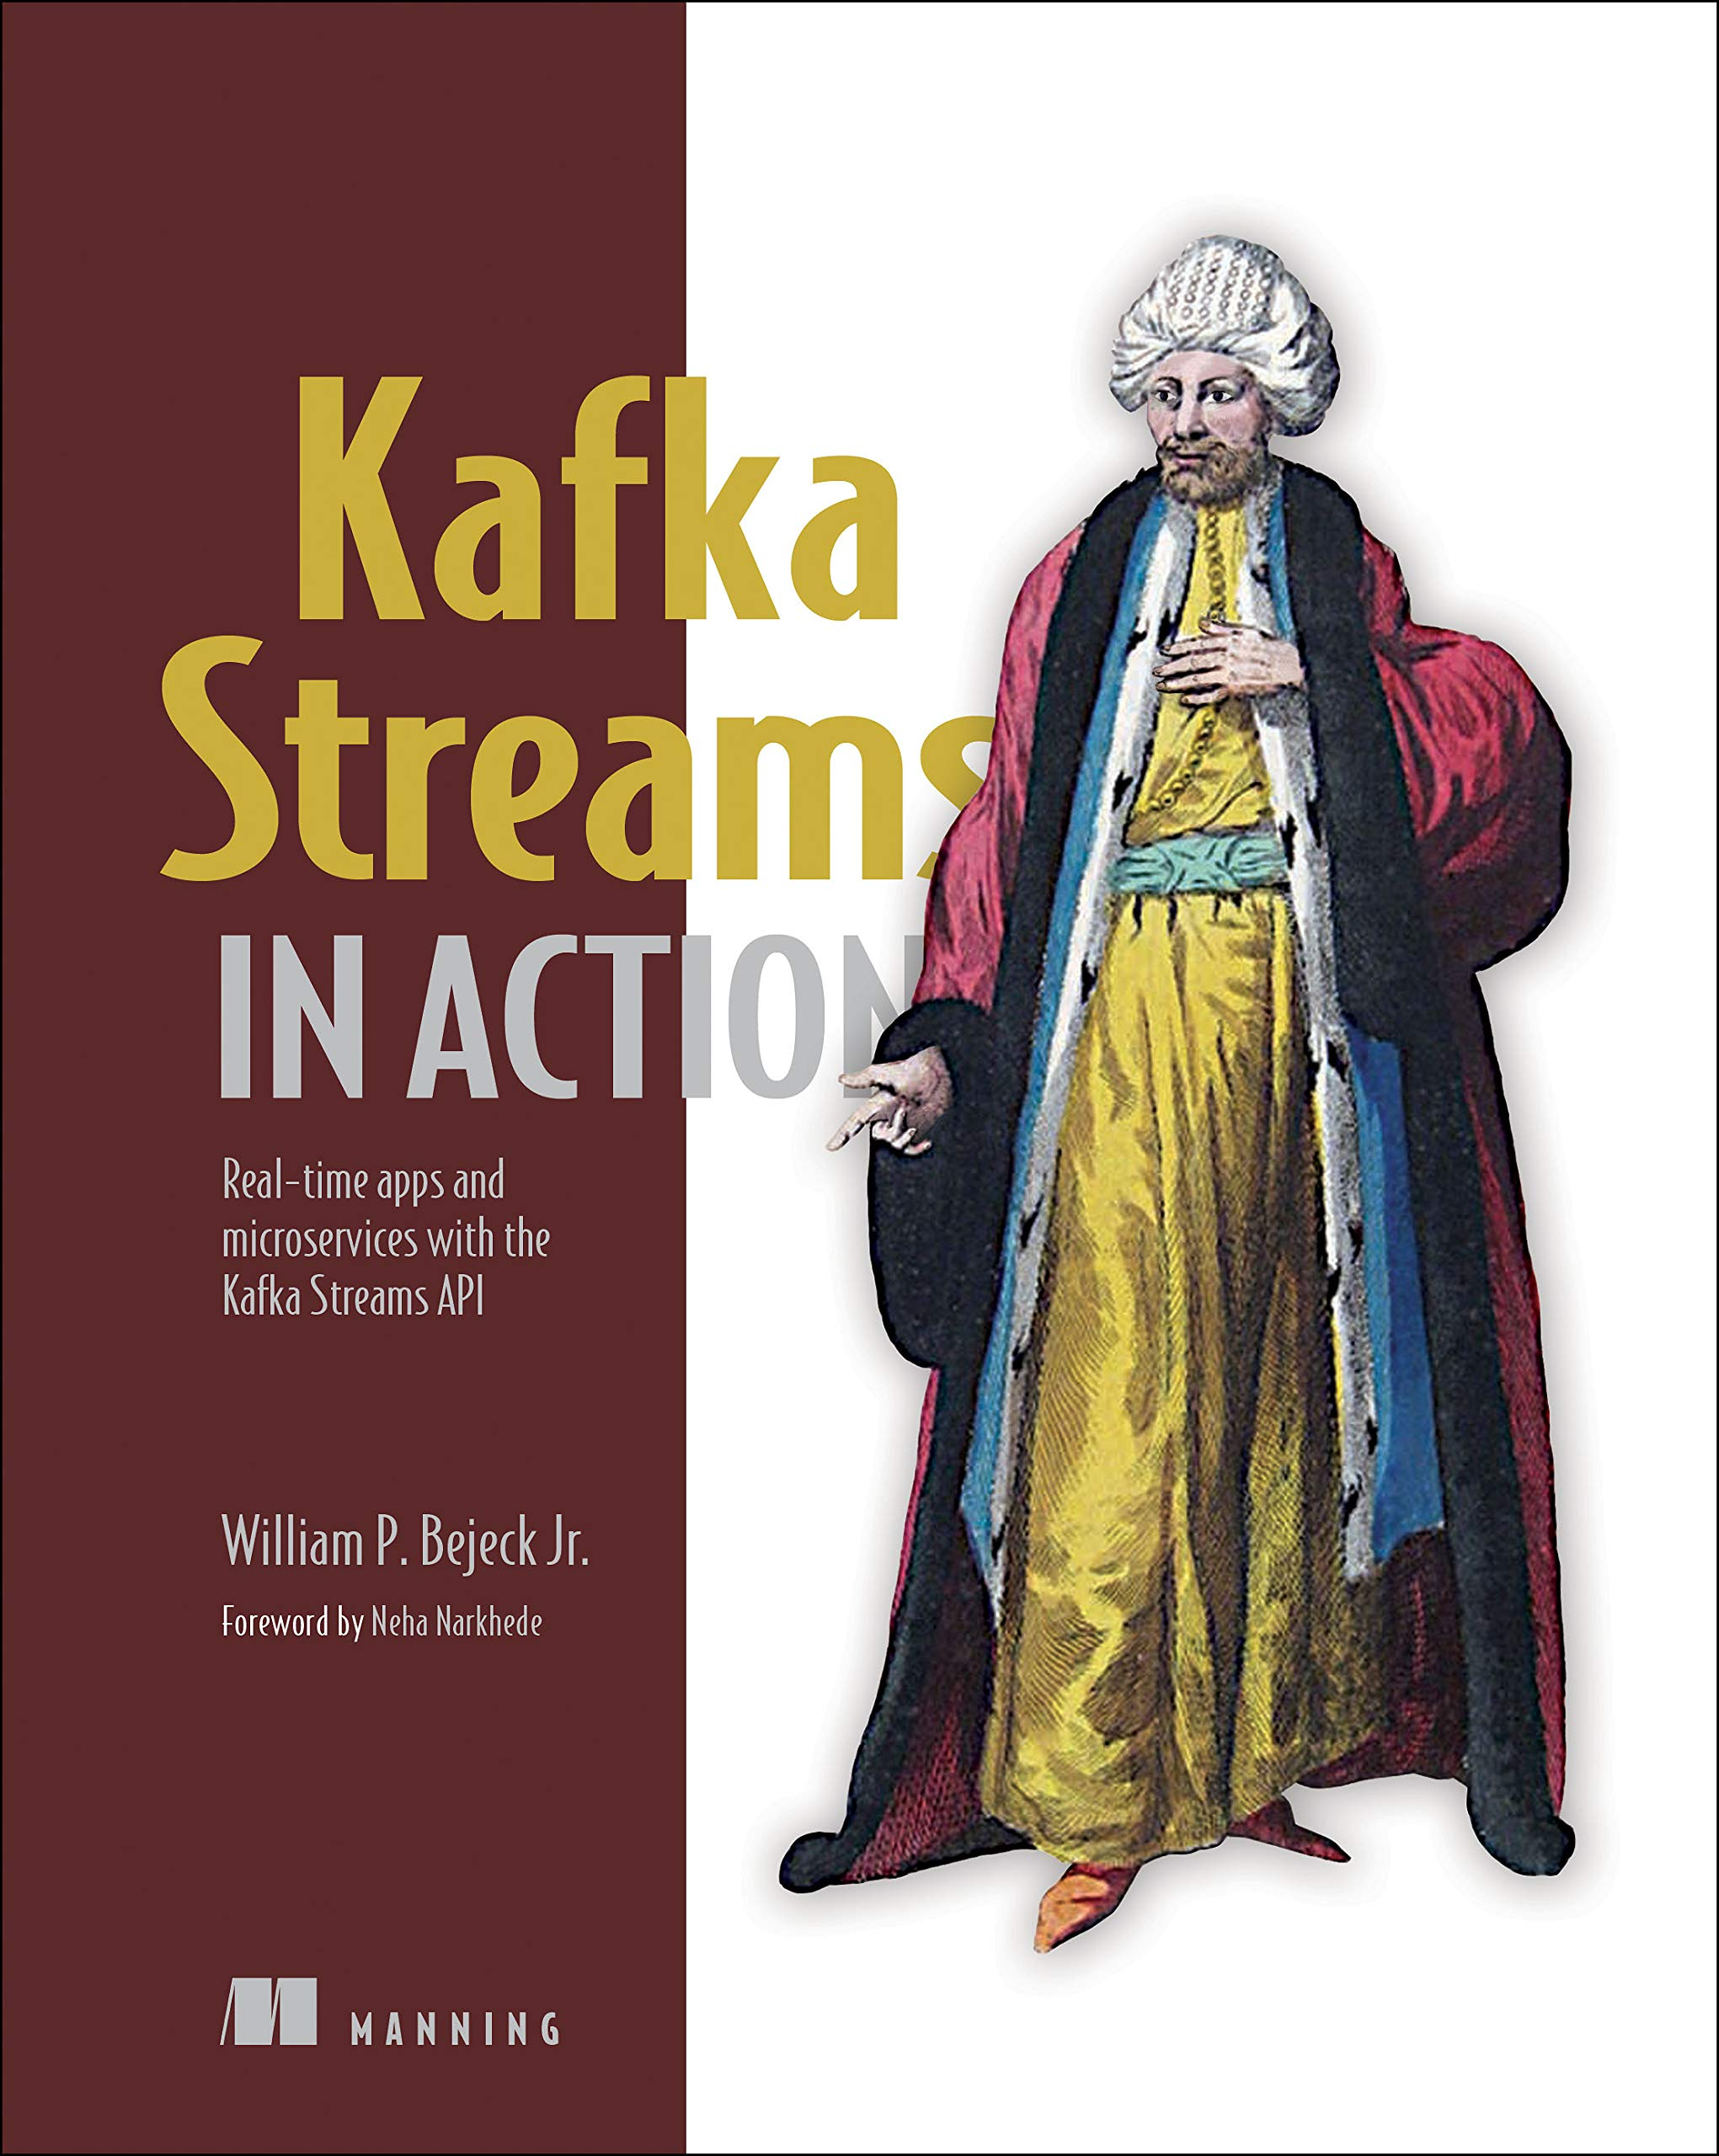 Kafka Streams in Action: Real-time apps and microservices with the Kafka Streams API